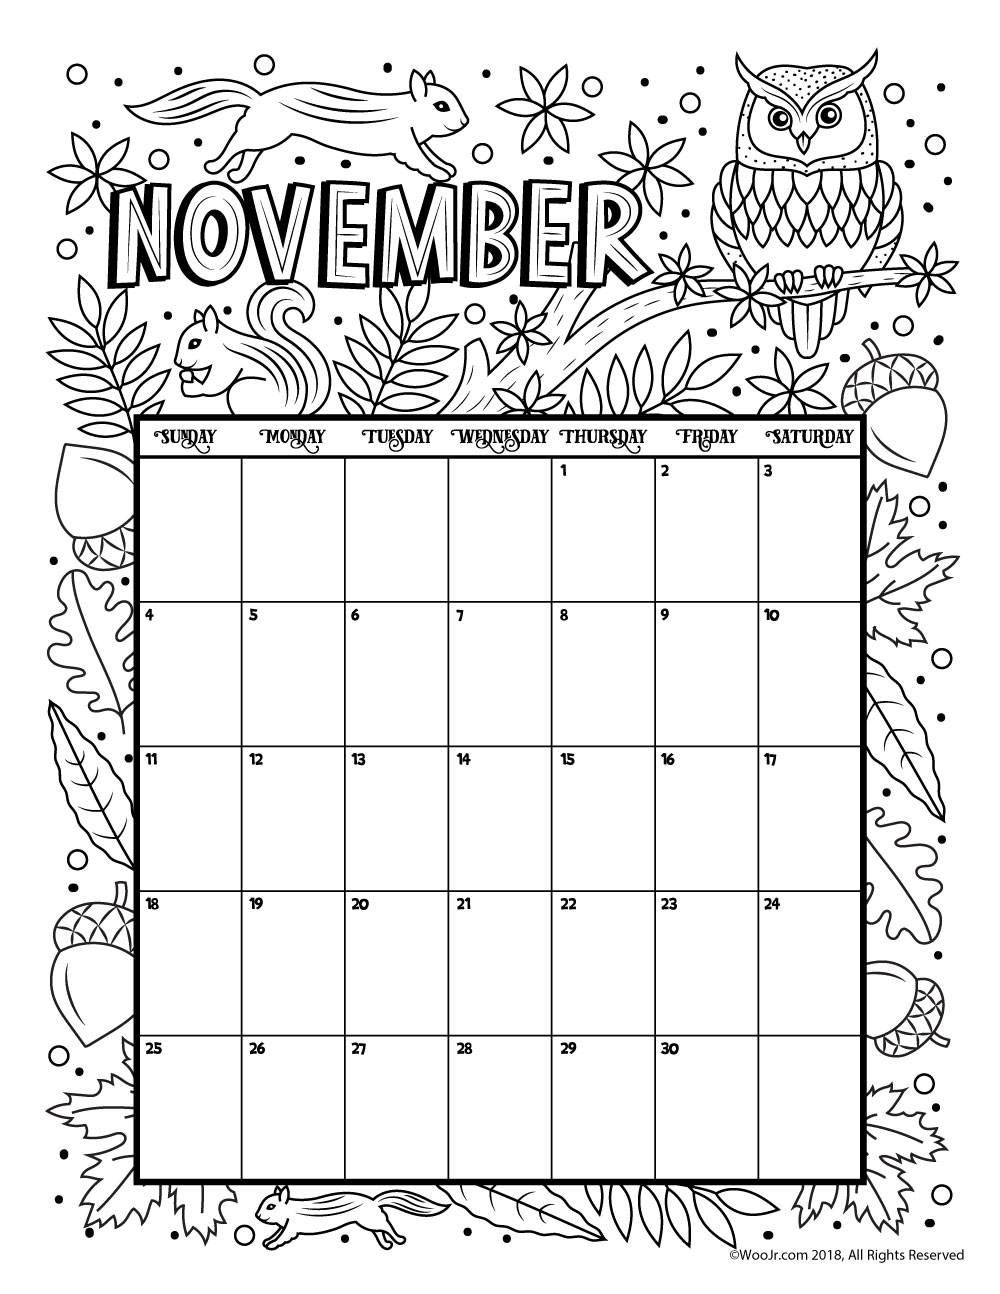 November 2018 calendar free download printables unlimited for Calendar coloring page